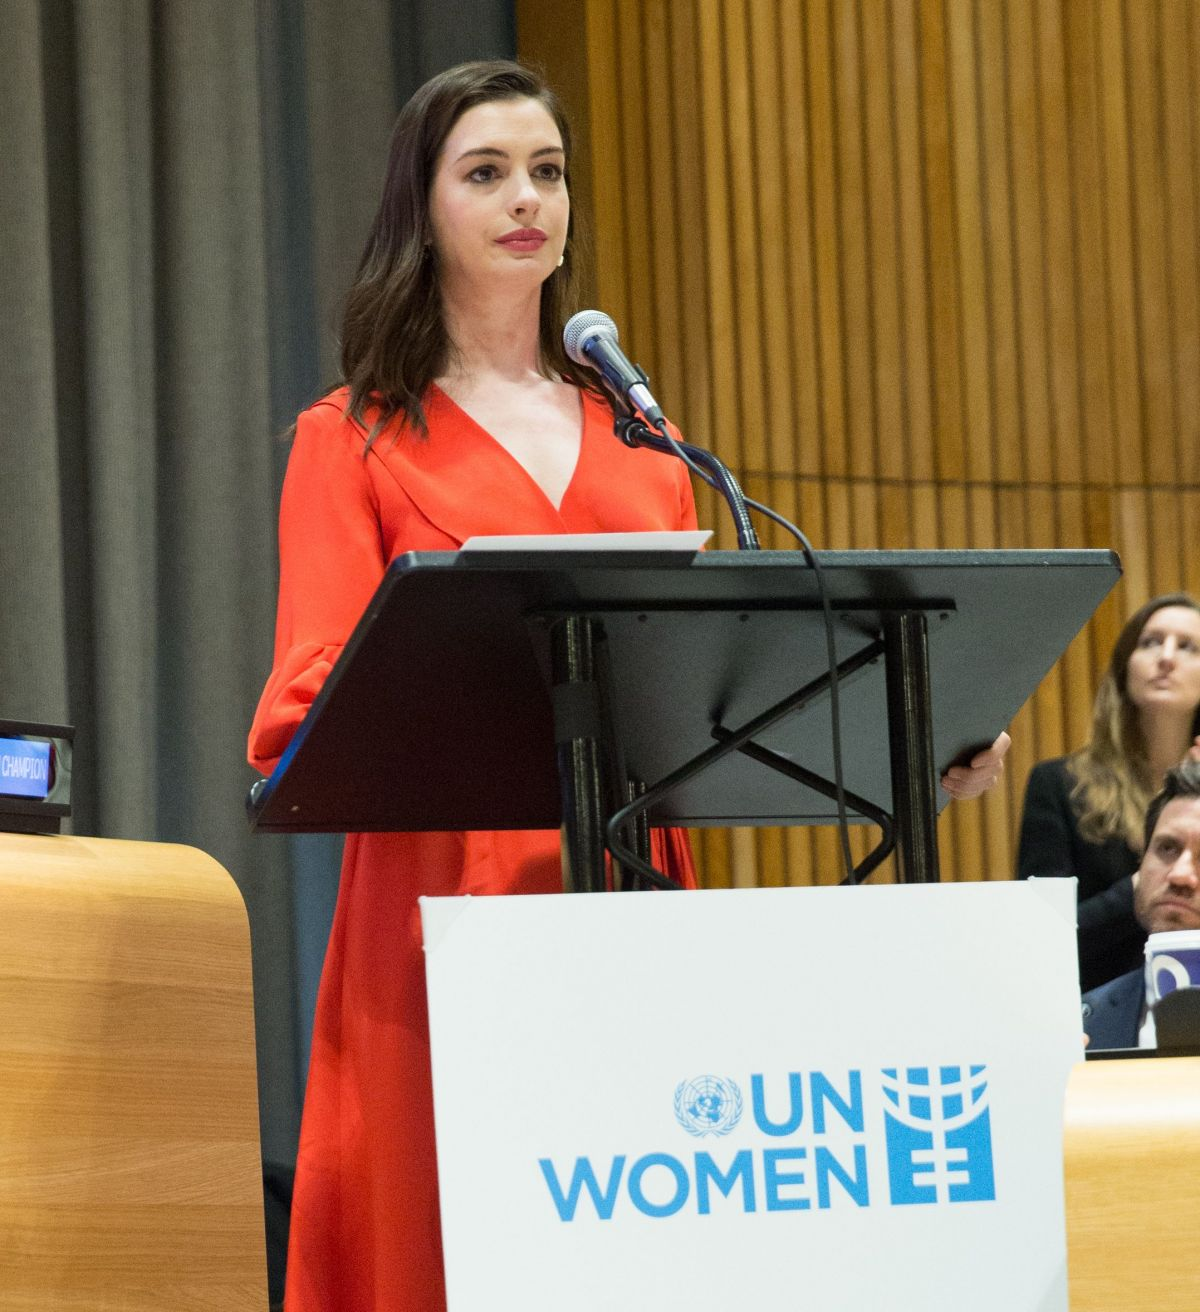 ANNE HATHAWAY Speaks At International Women's Day At